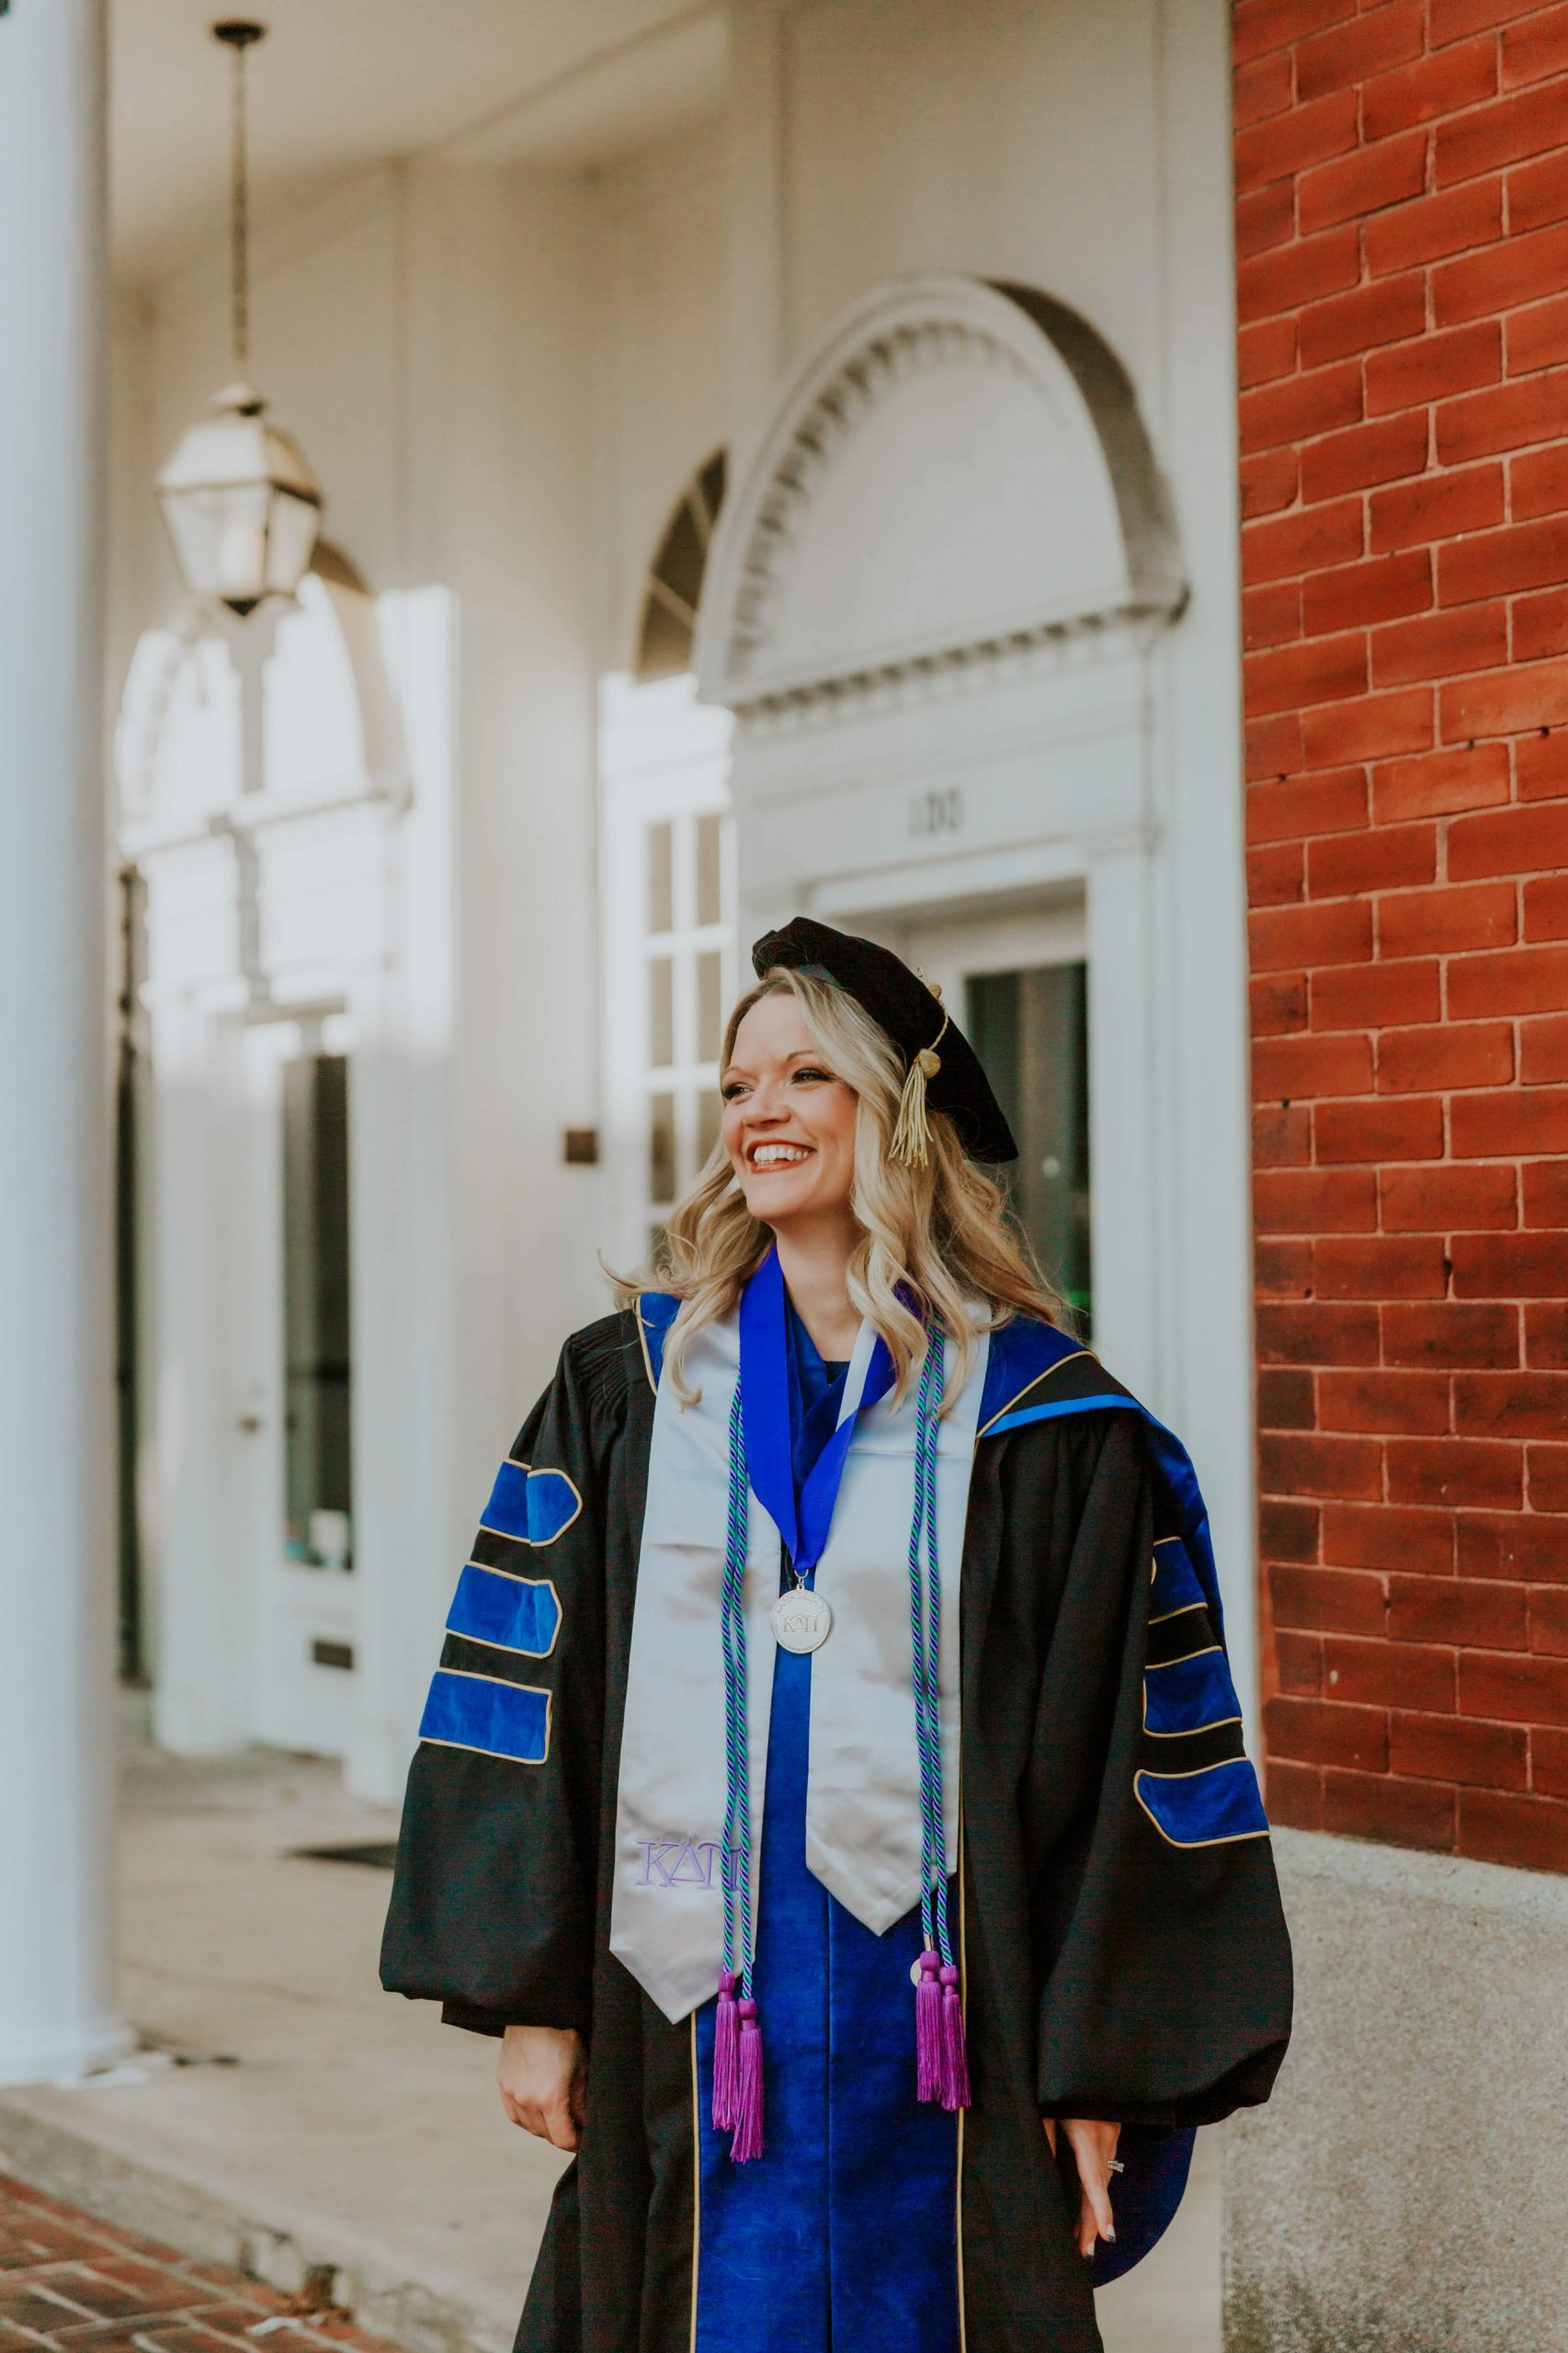 Congratulations to Our Instructor, Dr. Alicia Belcher!